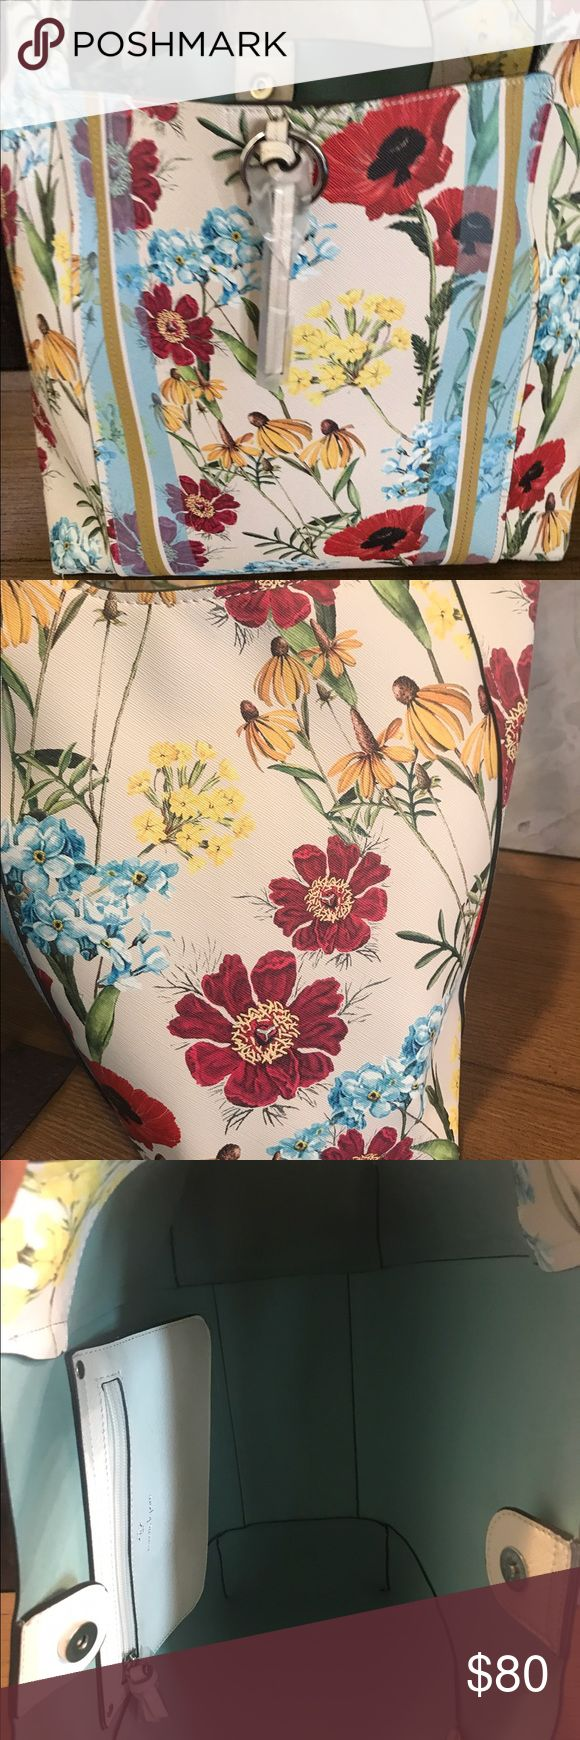 """Nanette Lapore Floral Shoulder Bag A beautiful Floral Print Shoulder bag by Nanette Lapore. Wide strap for shoulder comfort;magnetic closure, one zippered compartment. A deep bag to house all your essentials. This Floral Print is absolutely lovely. Approximate measurements: Length 12"""", width 14"""", depth 6"""" ships same day 📫🎁 Nanette Lepore Bags Shoulder Bags"""